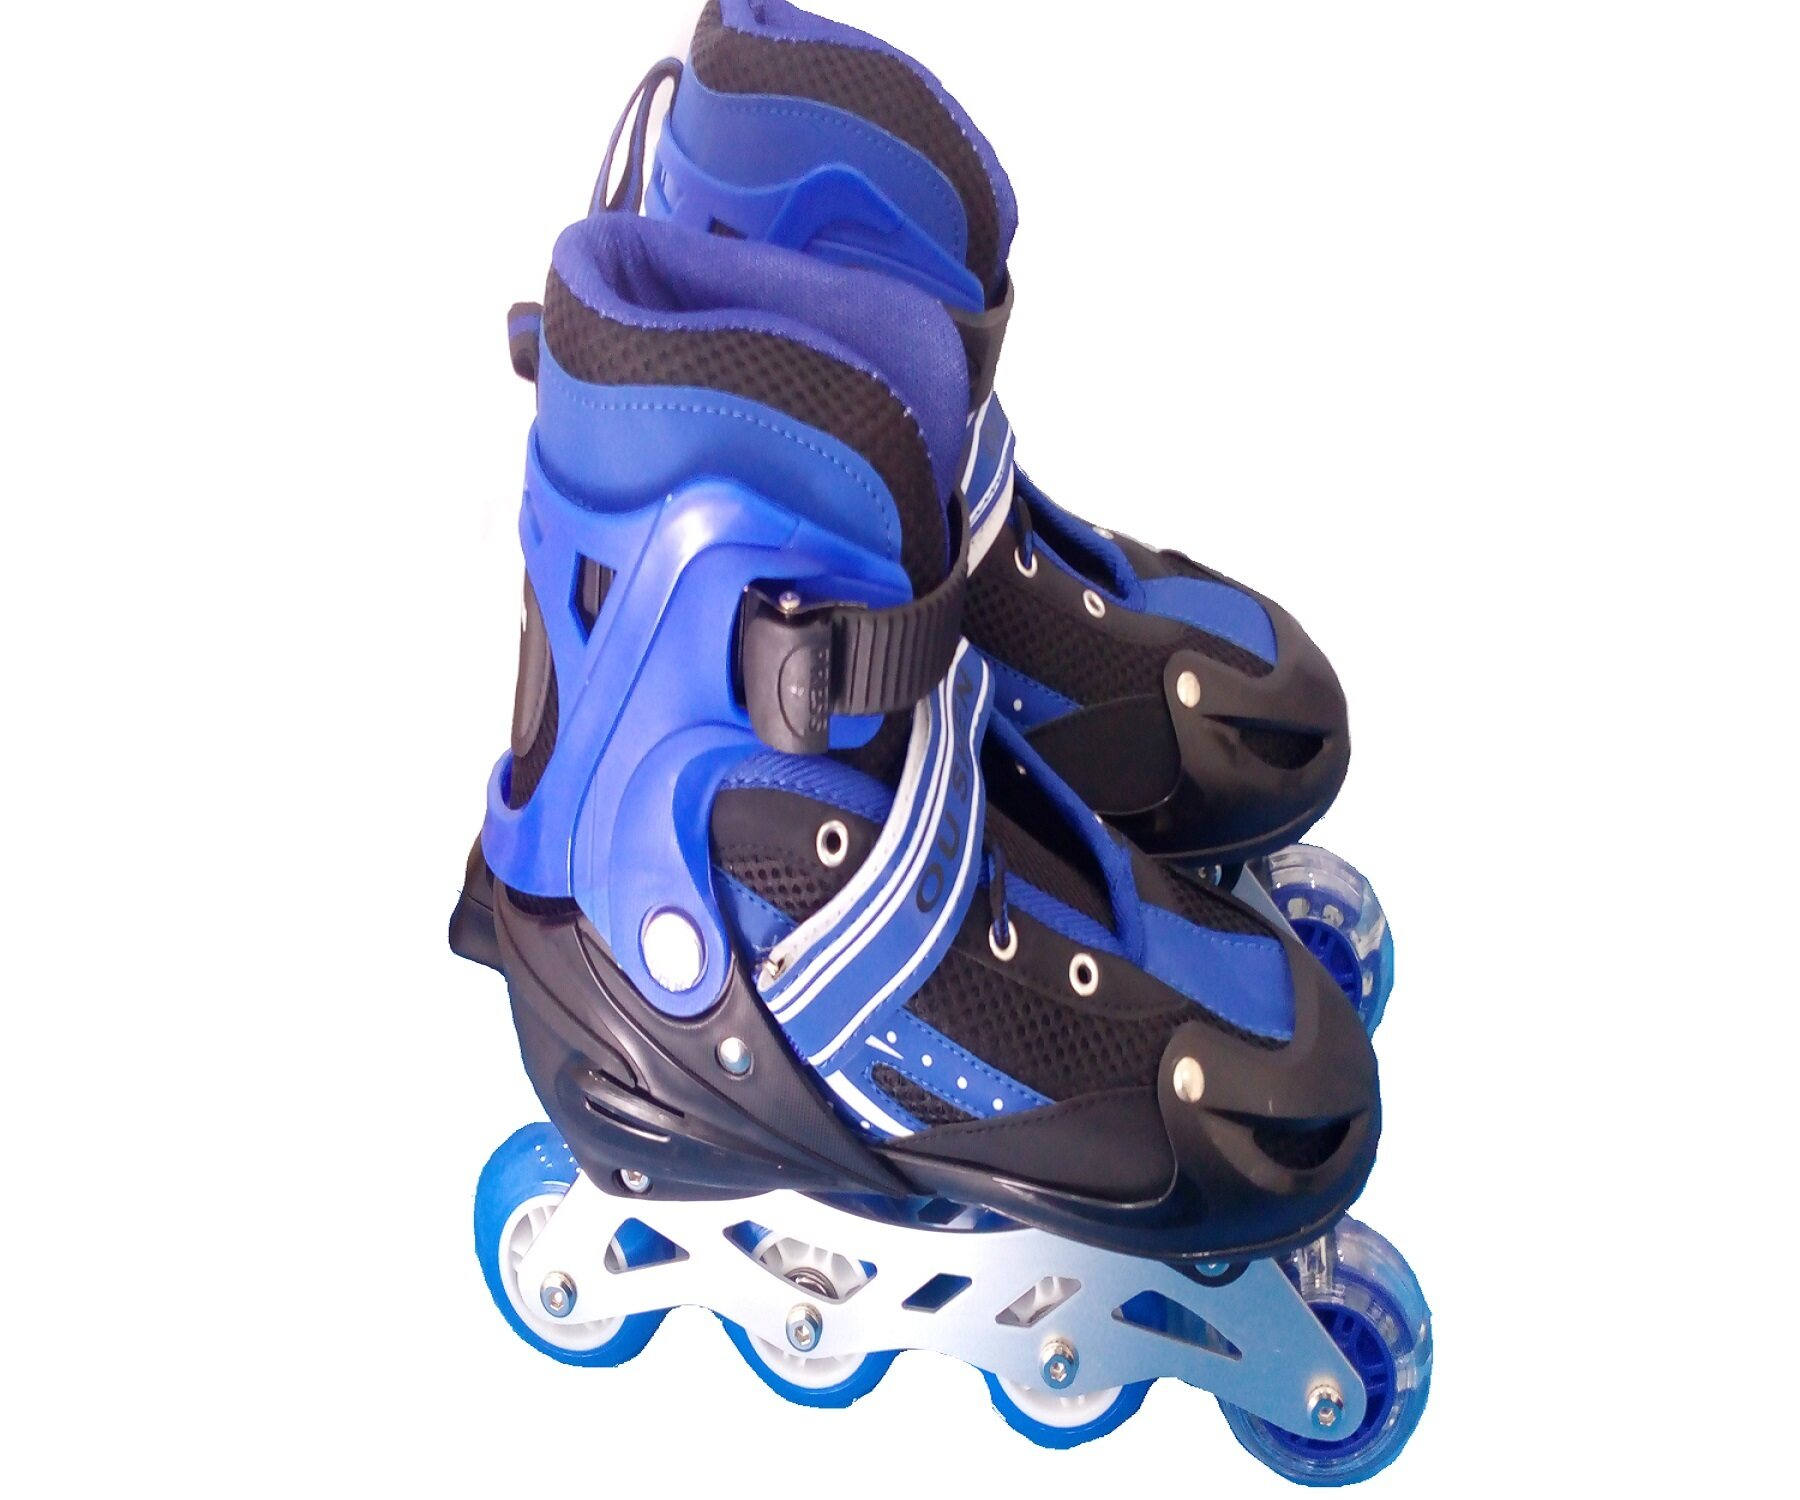 Roller skate shoes malaysia - Adjustable Inline Skate Roller Blade Blue Size L Lazada Malaysia